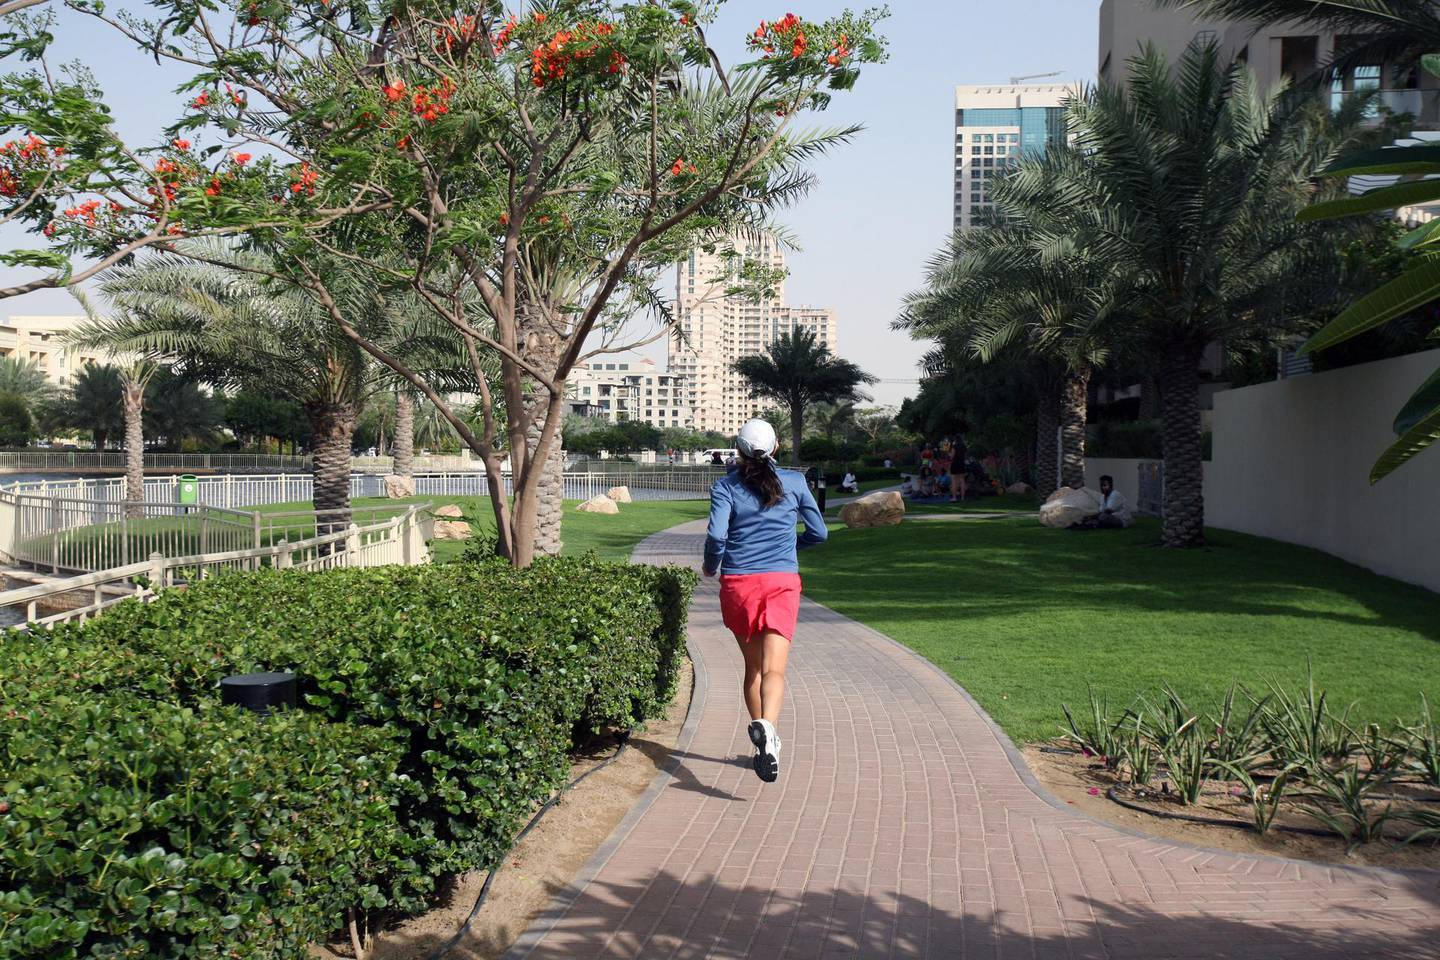 DUBAI, UNITED ARAB EMIRATES - APRIL 28:  A woman jogging in The Greens in Dubai on April 28, 2010. The Dubai Internet City Metro Station which is located close by, is one of seven new stations set to open on Friday, April 30, 2010.  (Randi Sokoloff / The National)  For A&L Oasis-Metro/and or Stock